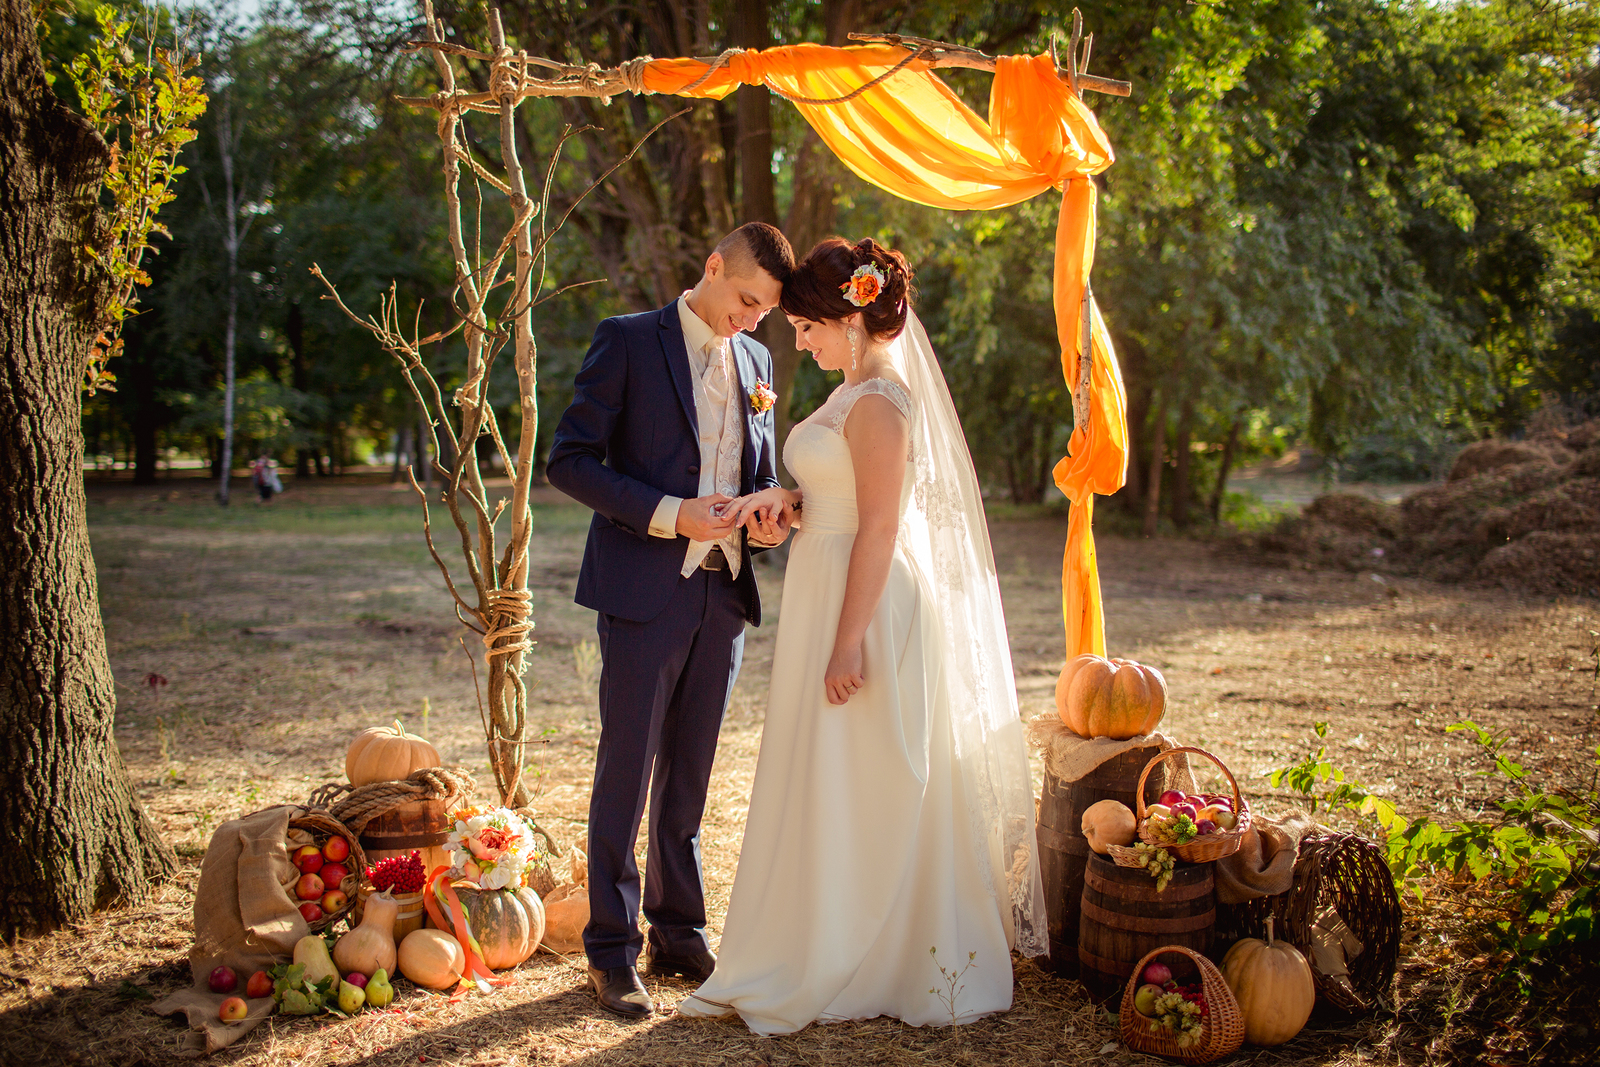 wedding ideas for may 2016 fall wedding ideas you may overlooked versatile events 28146